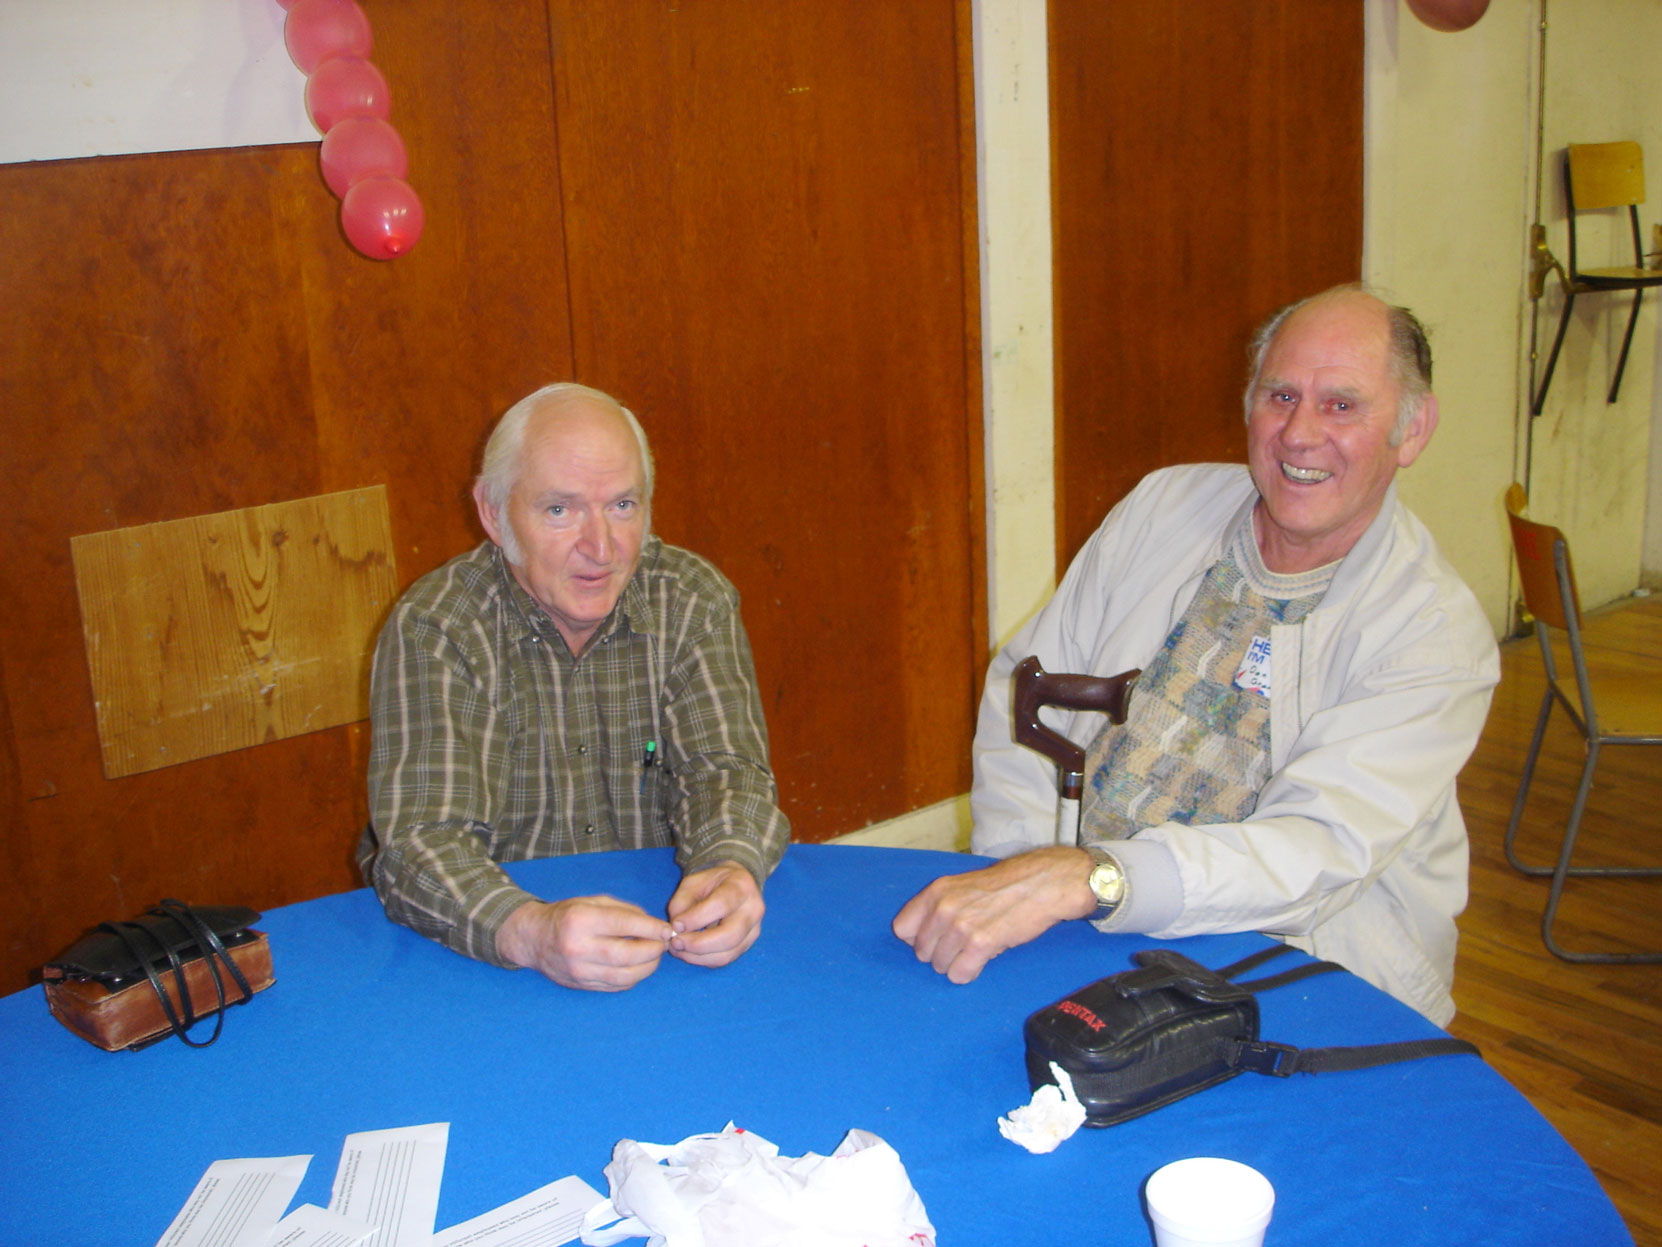 Bob Crawford (left) at the Hillcrest Lumber Co. Employees Reunion in 2006. (photo courtesy of Cecil Ashley)